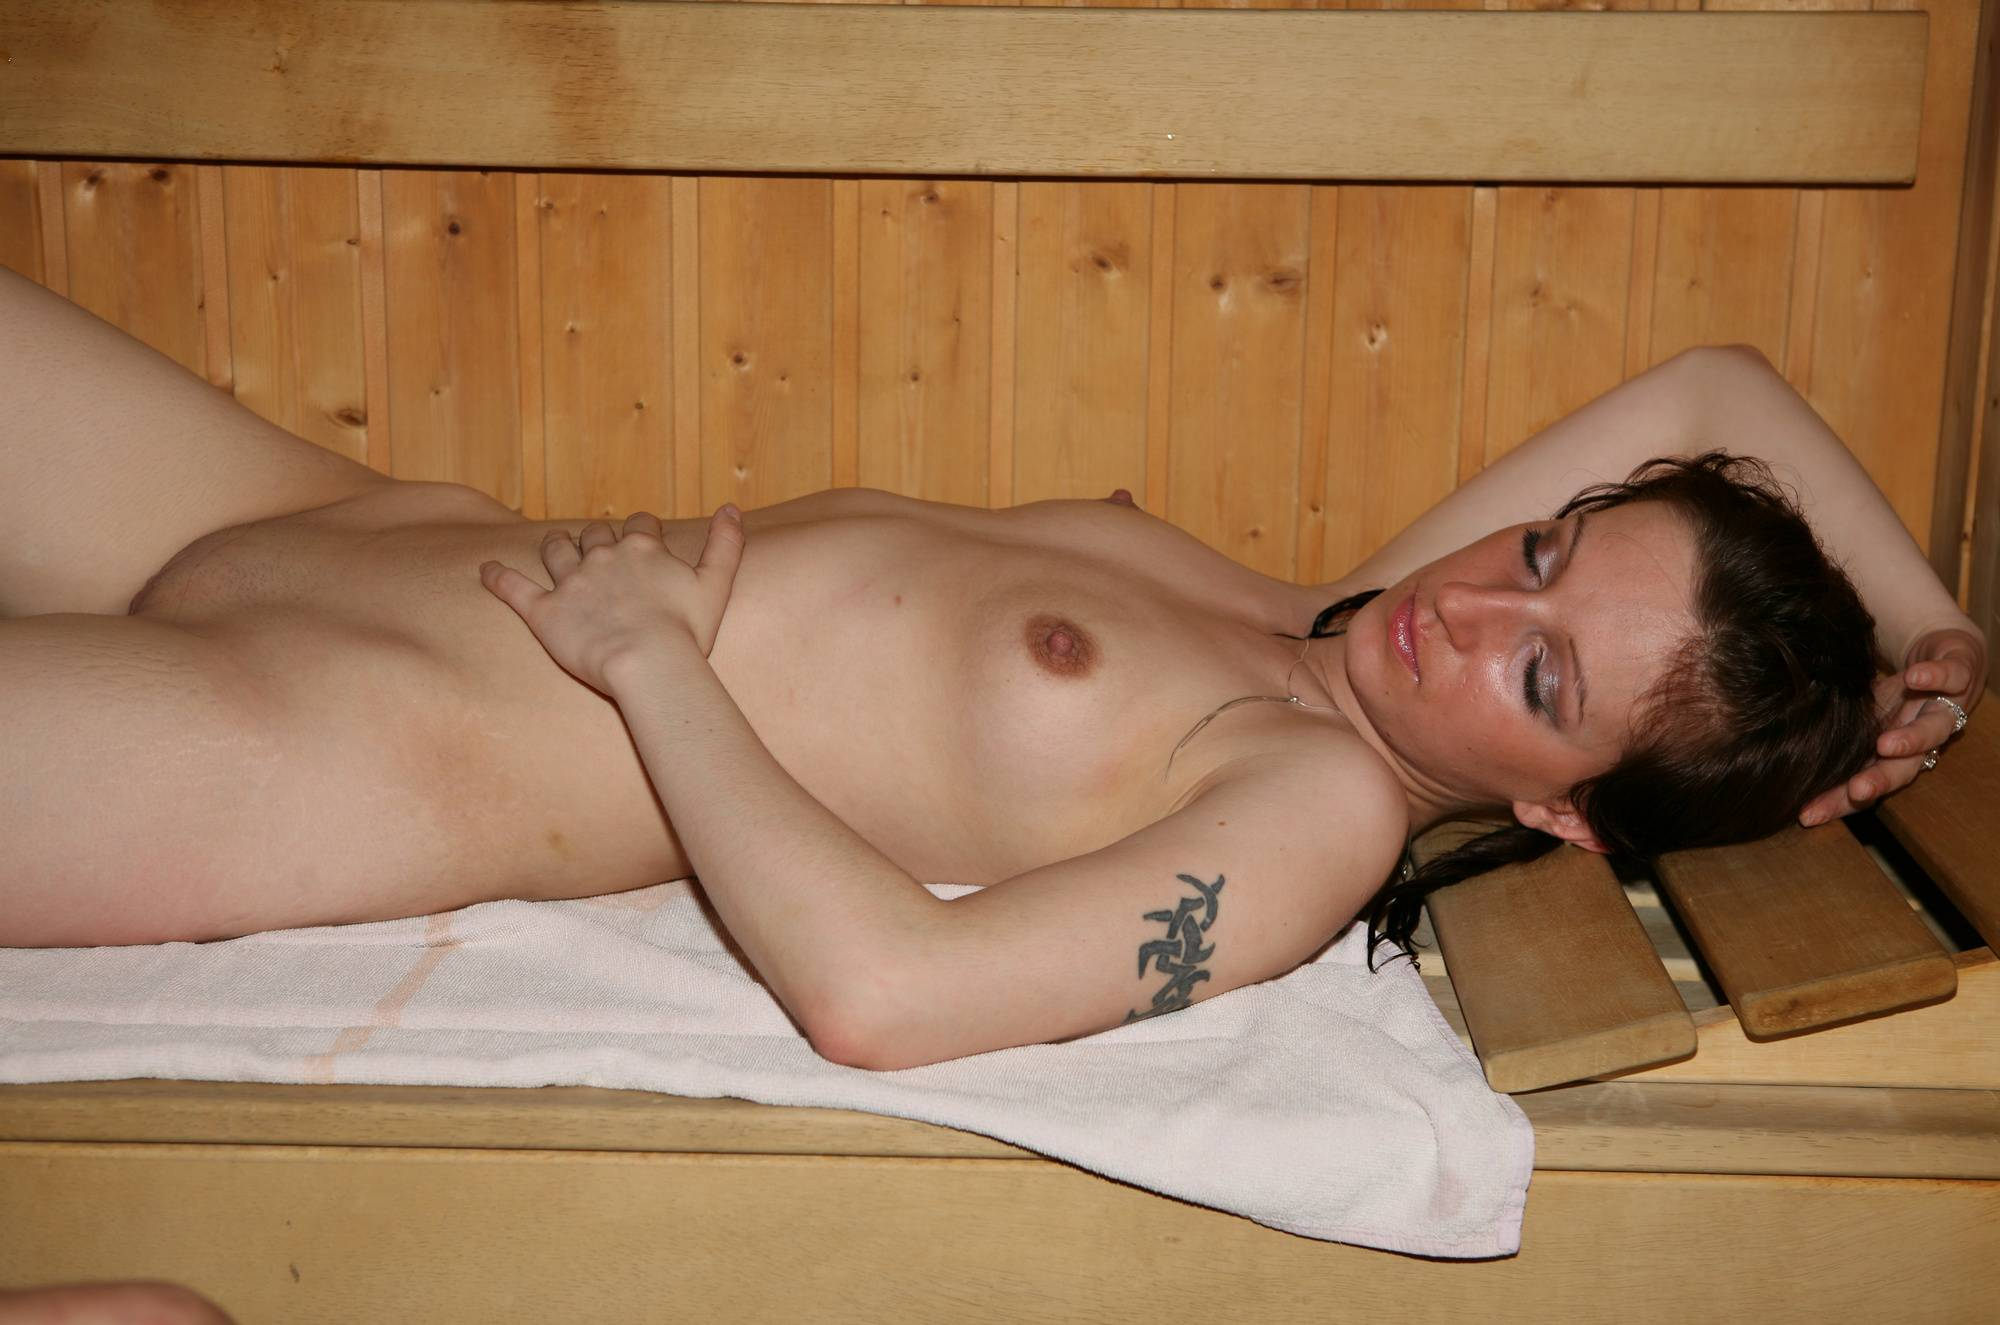 Purenudism Photos Friends Nude Pool Sauna - 2